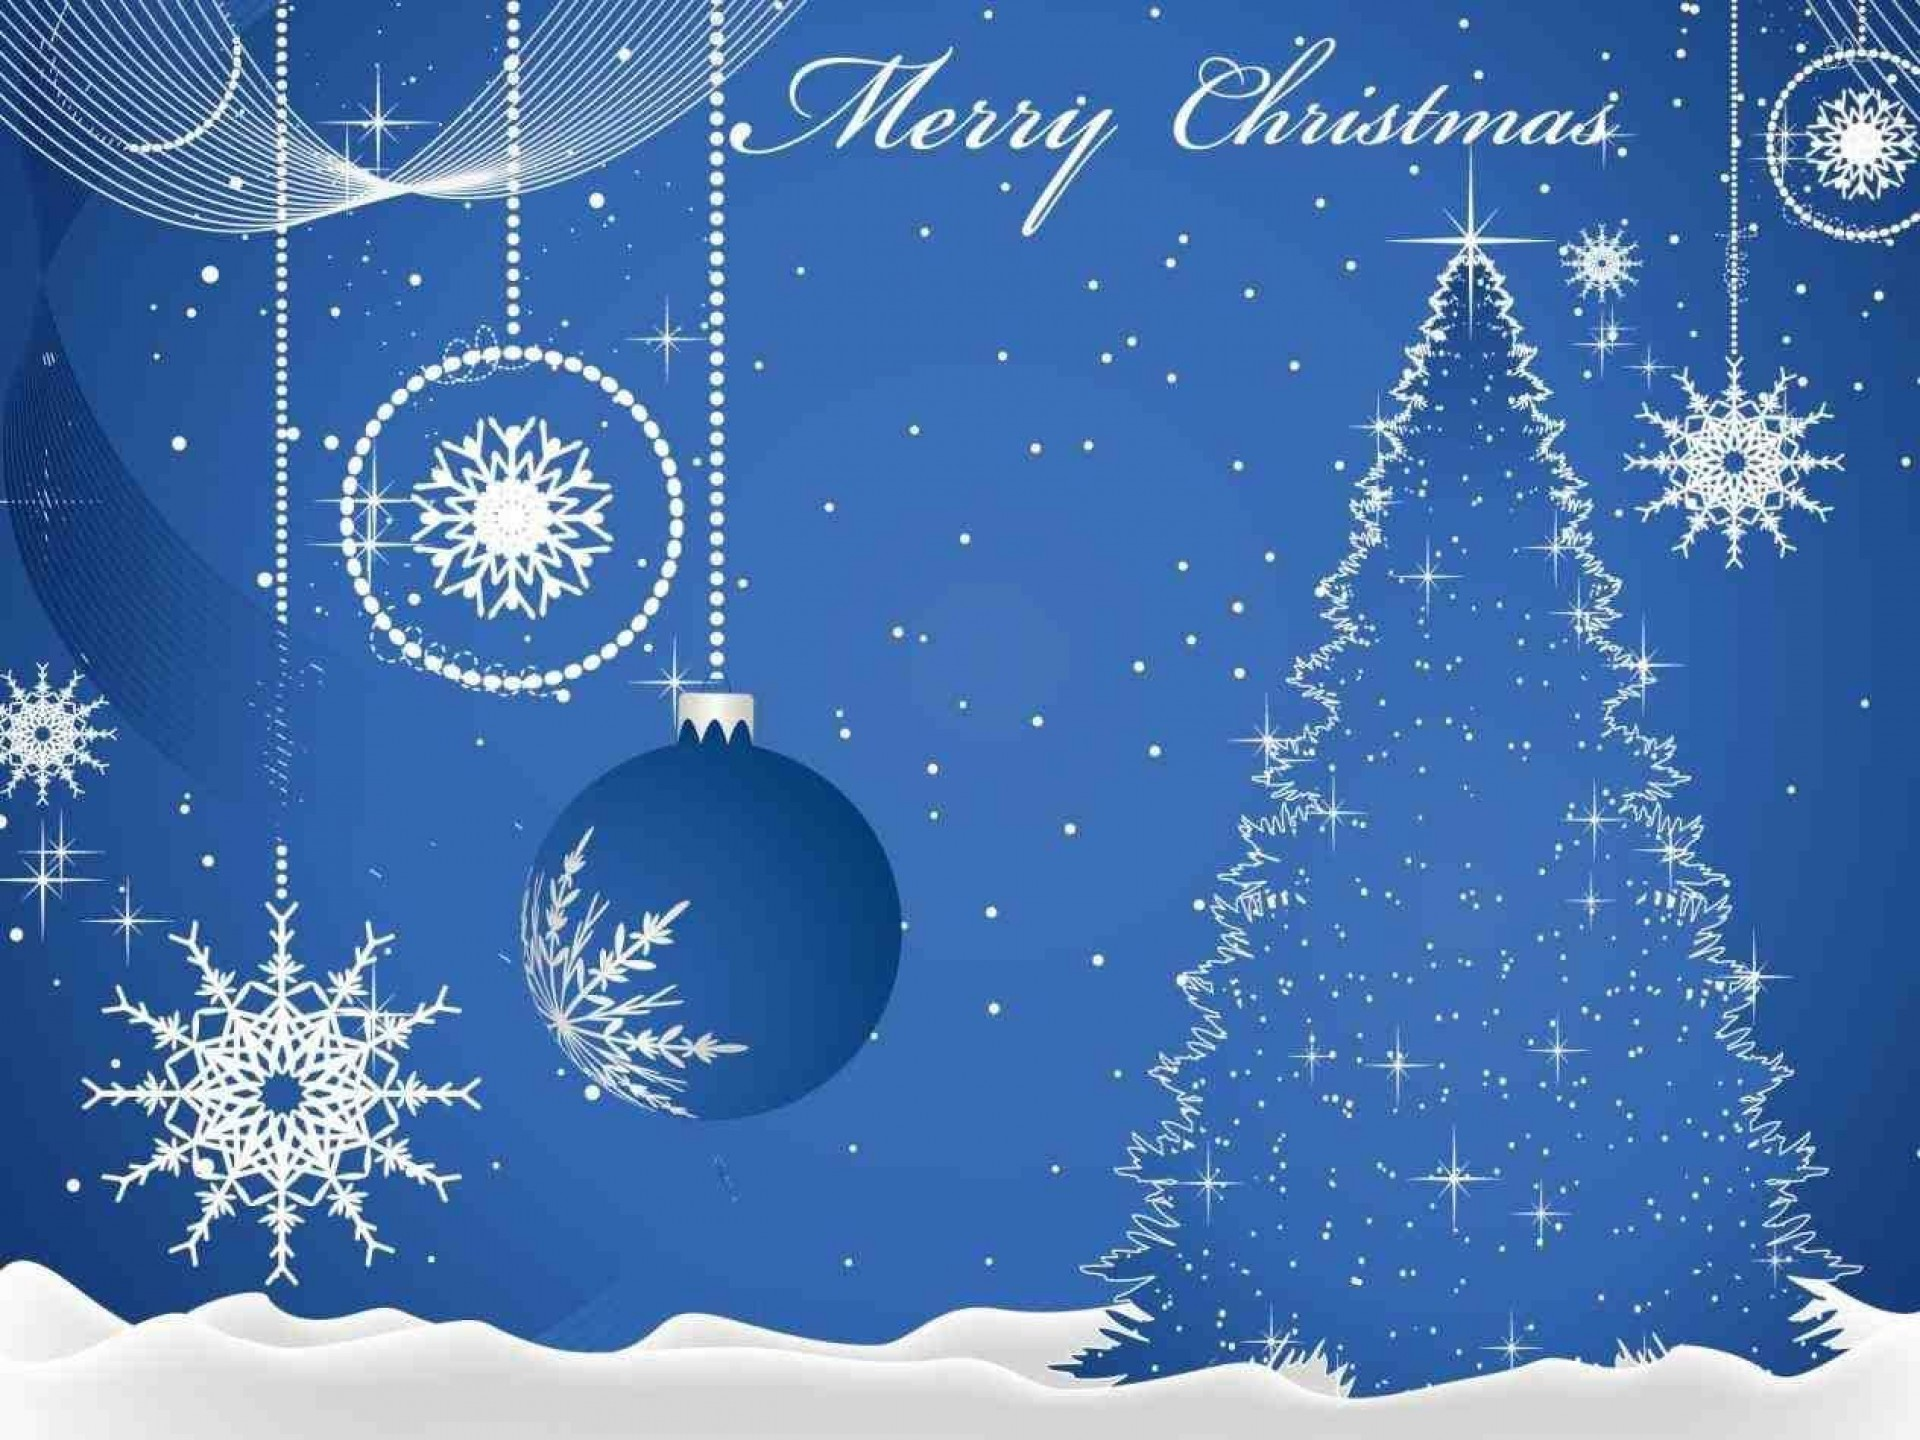 001 Frightening Free Printable Religiou Christma Card Template Image  Templates1920